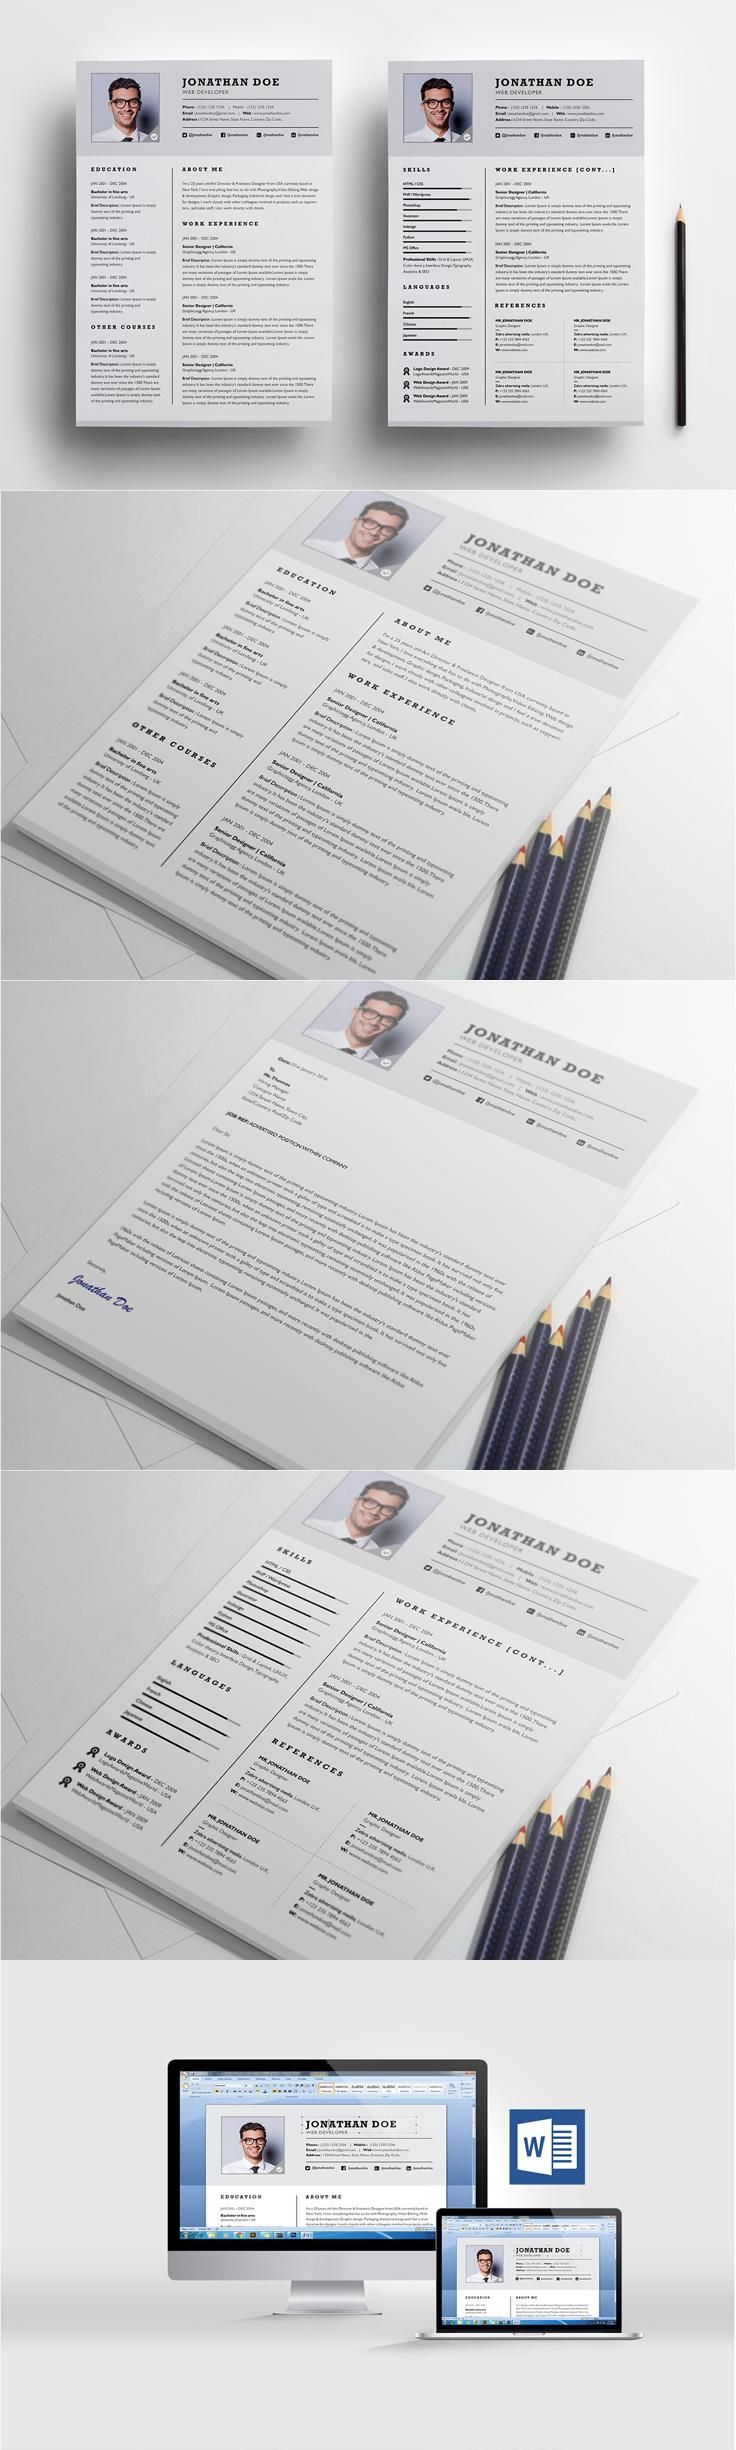 Template For A Cover Letter For A Resume%0A  resume  design from ResumeFoundry   DOWNLOAD  https   creativemarket com   Resume DesignCover LettersResume TemplatesTextile